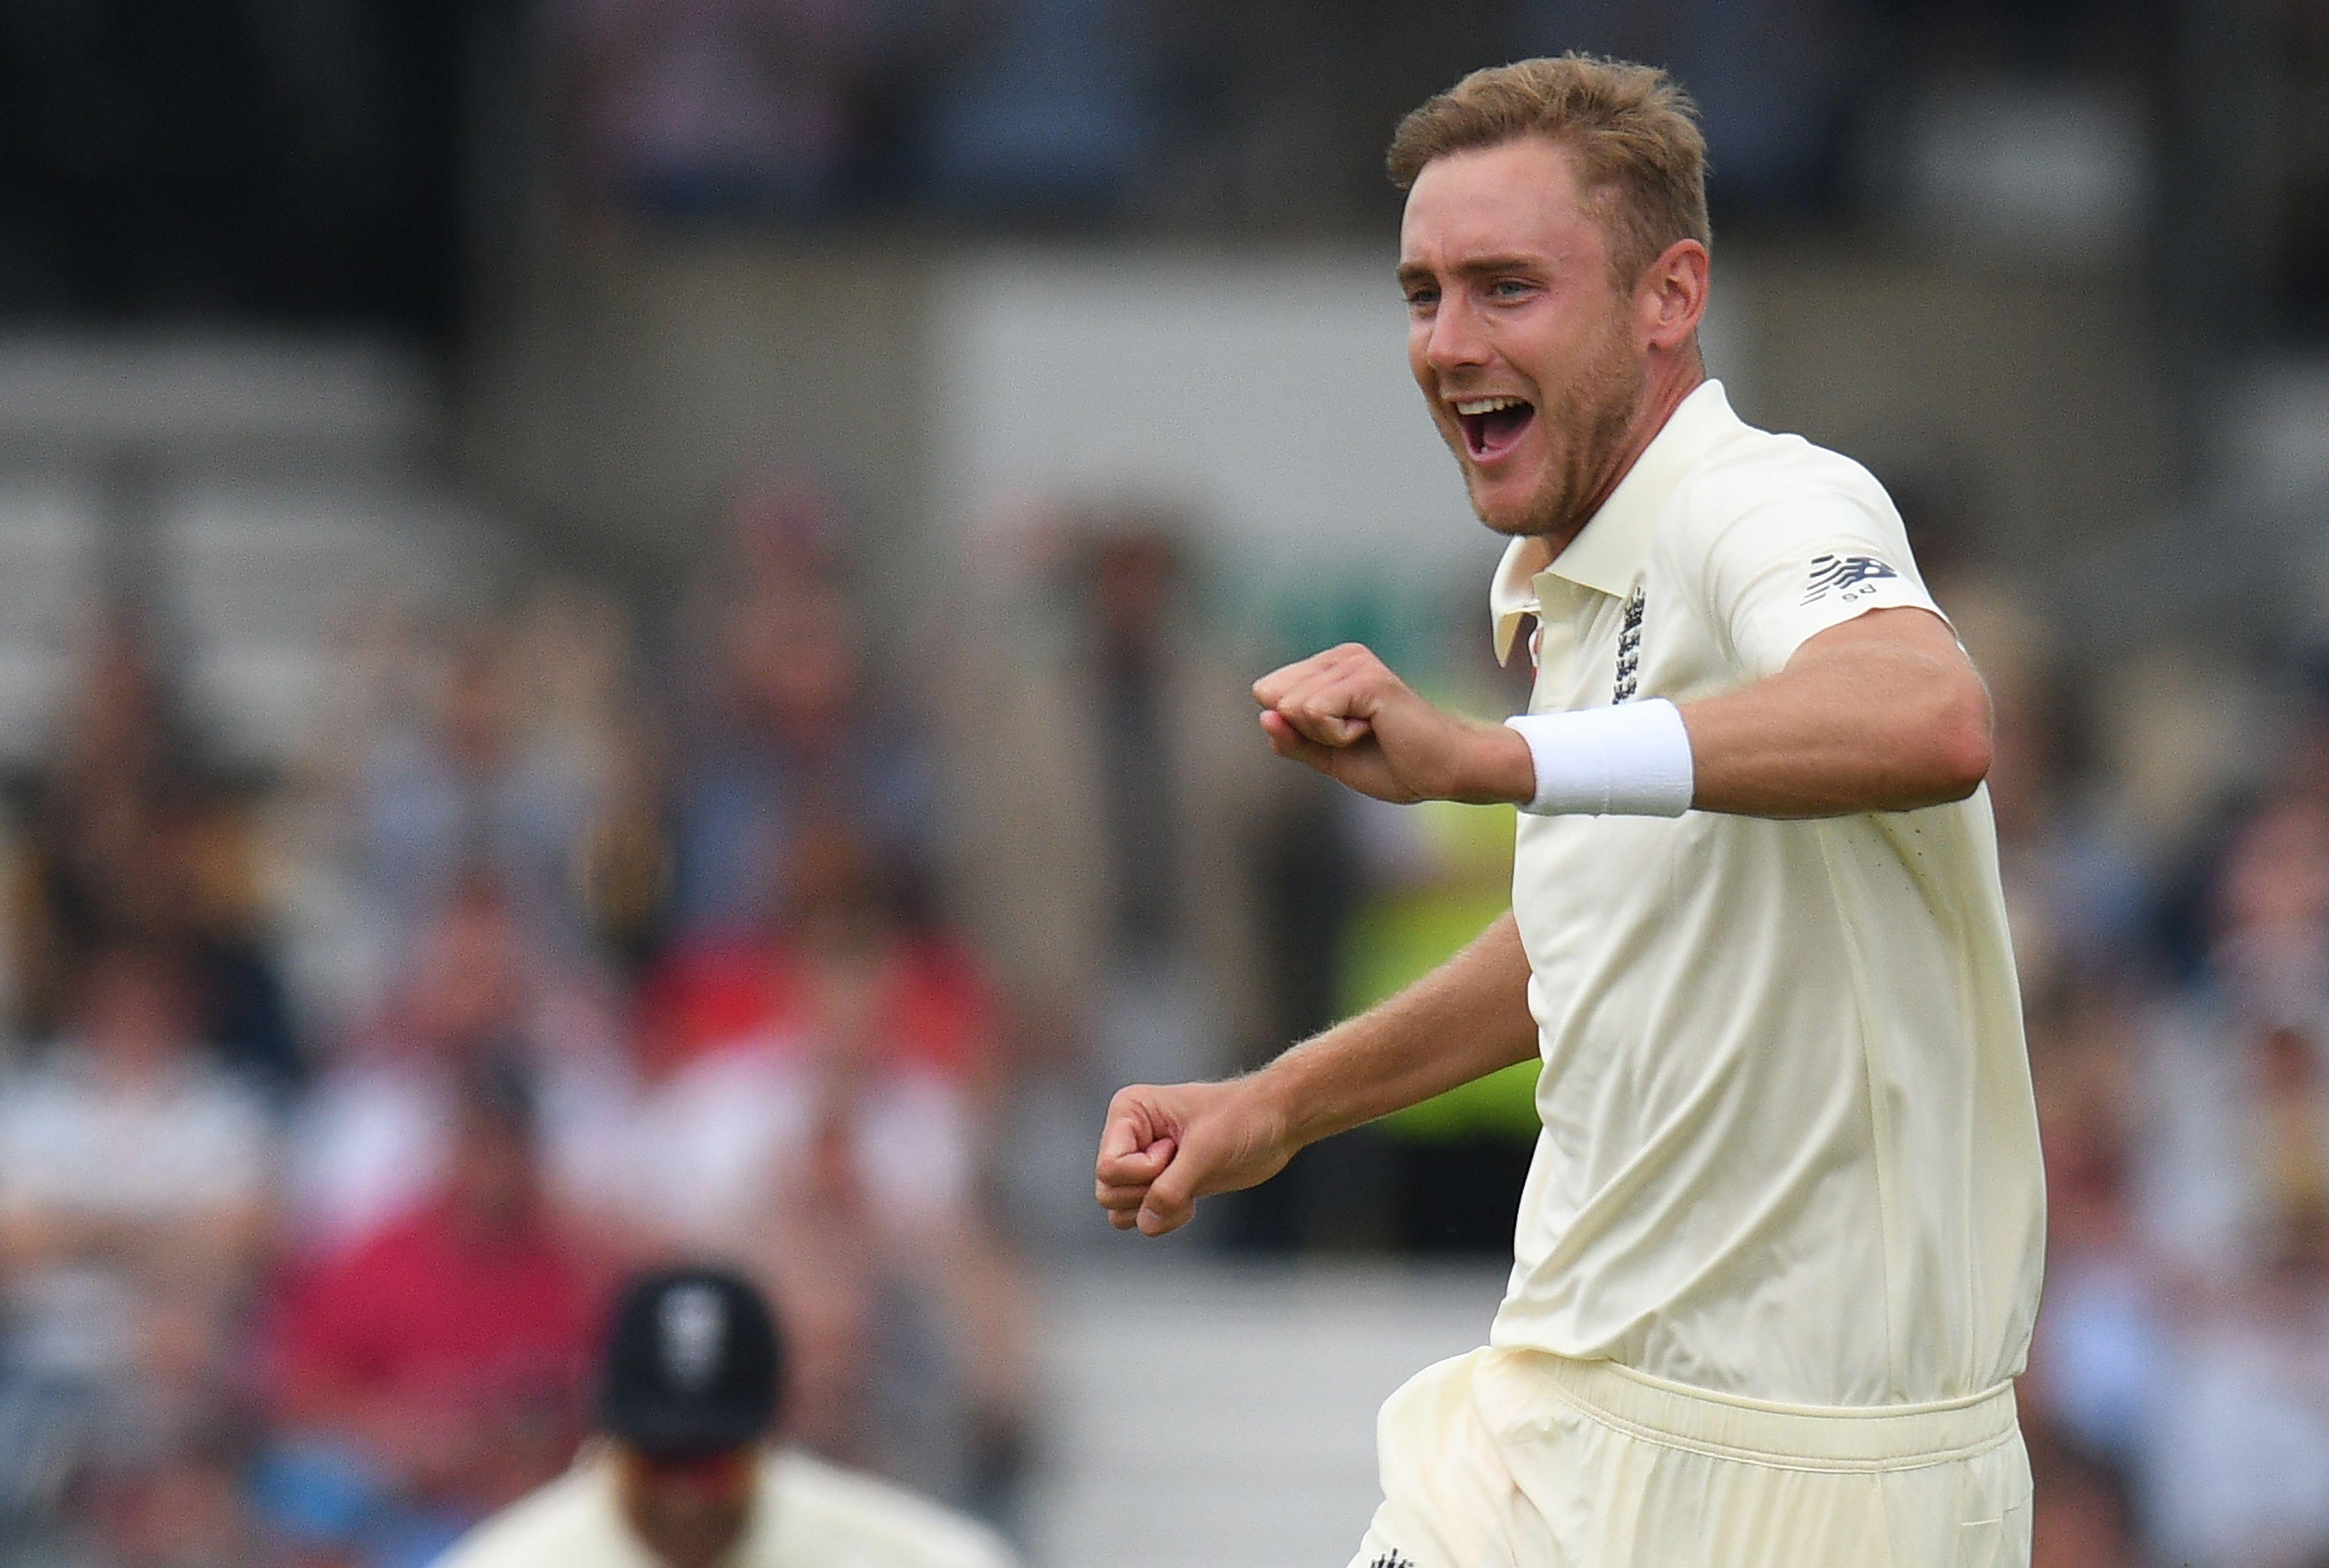 Stuart Broad helped rout Pakistan for 174 all out on day one of the Second Test